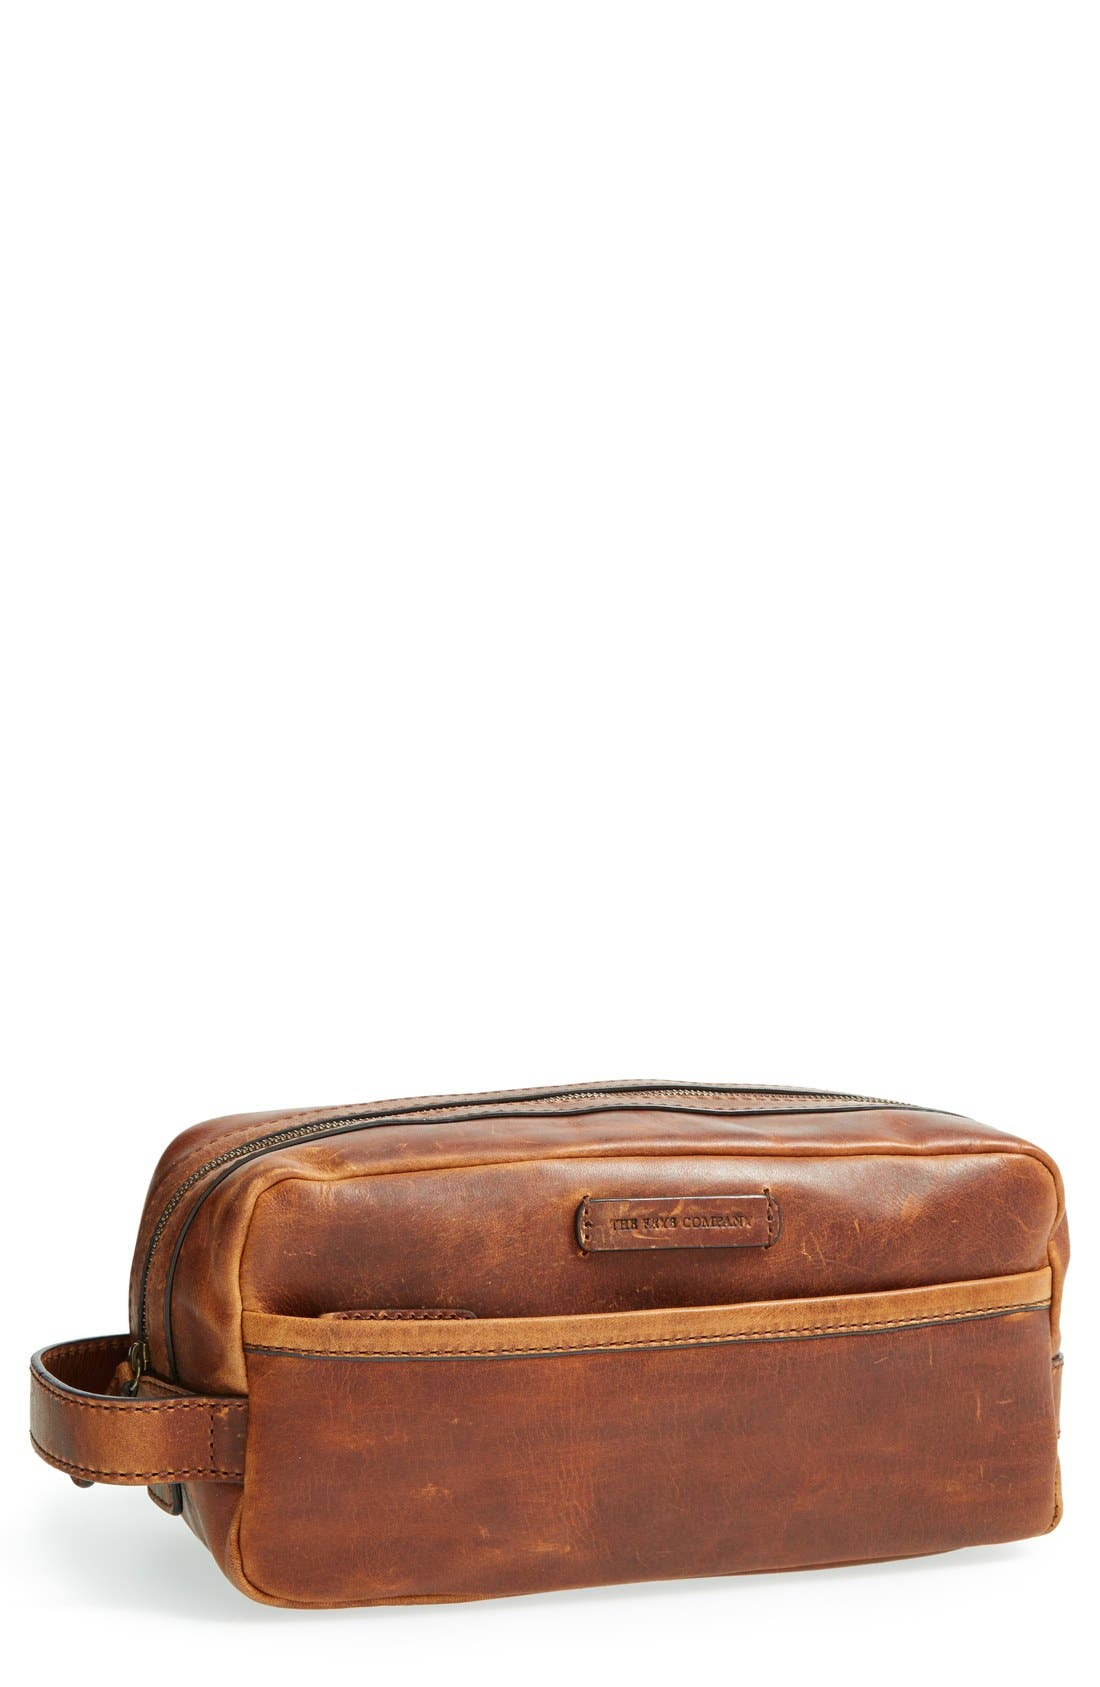 Alternate Image 1 Selected - Frye 'Logan' Leather Travel Kit